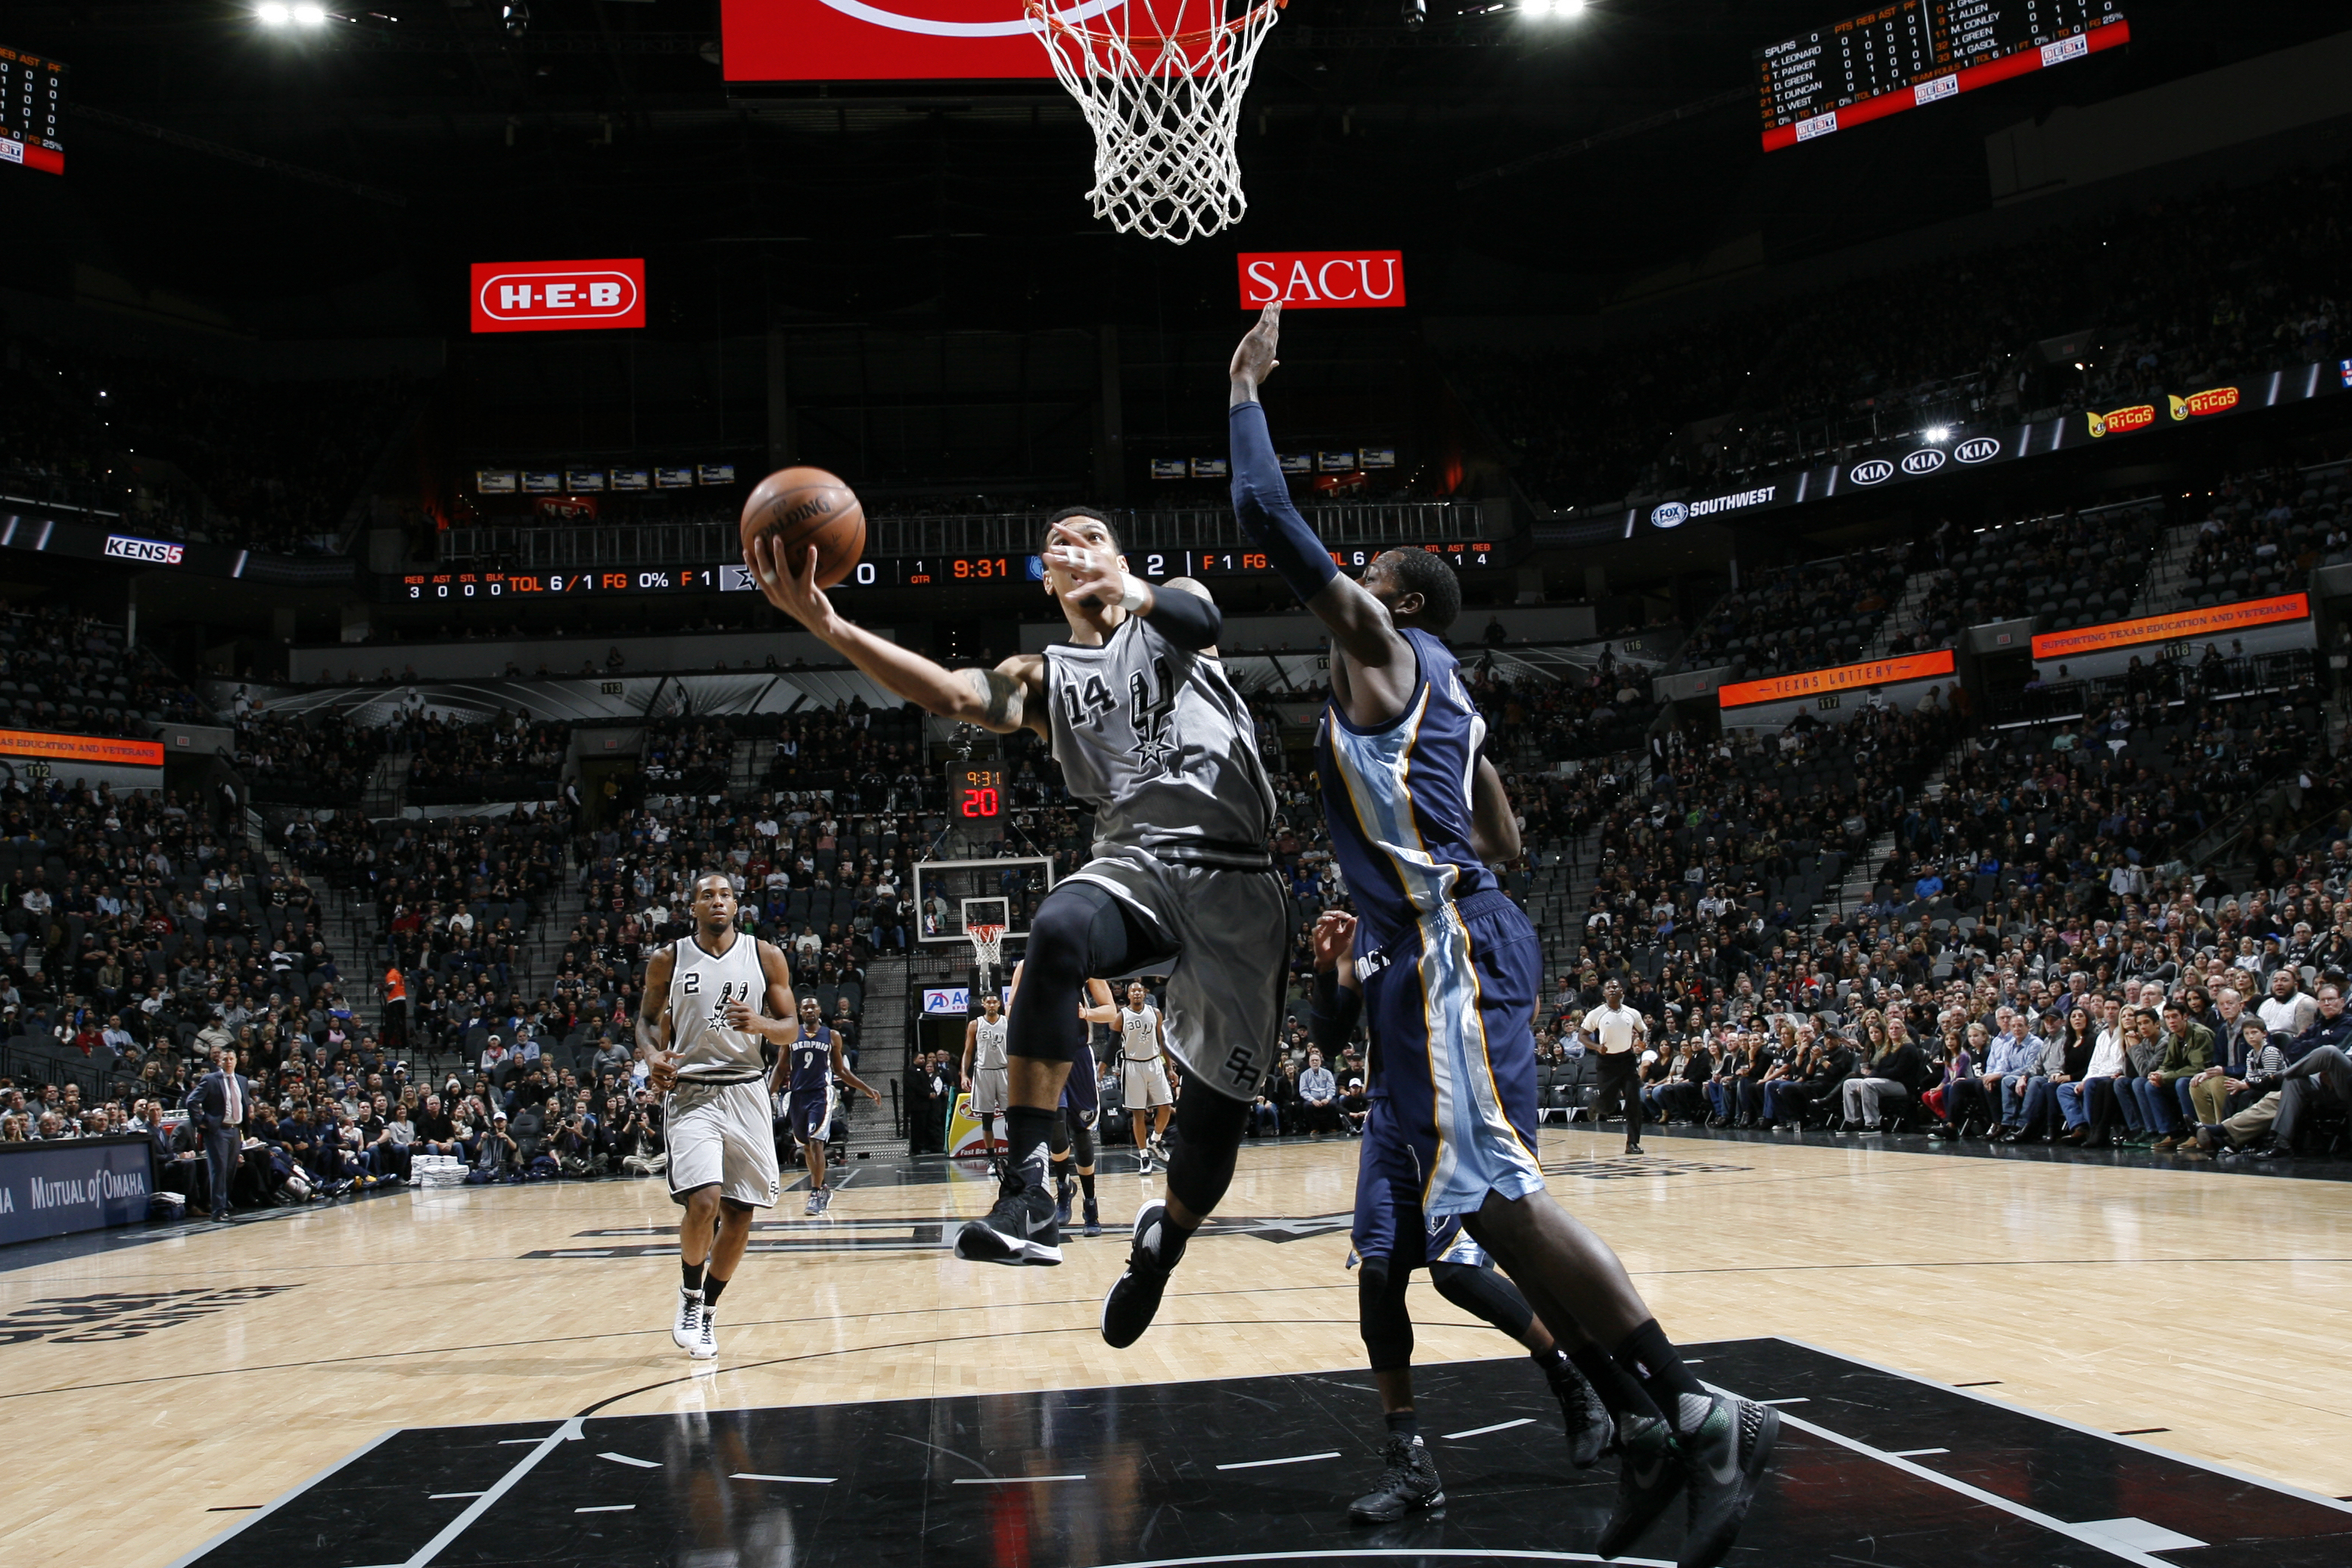 SAN ANTONIO, TX - NOVEMBER 21: Danny Green #14 of the San Antonio Spurs goes for the lay up against the Memphis Grizzlies during the game on November 21, 2015 at TAT&T Center in San Antonio, Texas. (Photo by Chris Covatta/NBAE via Getty Images)